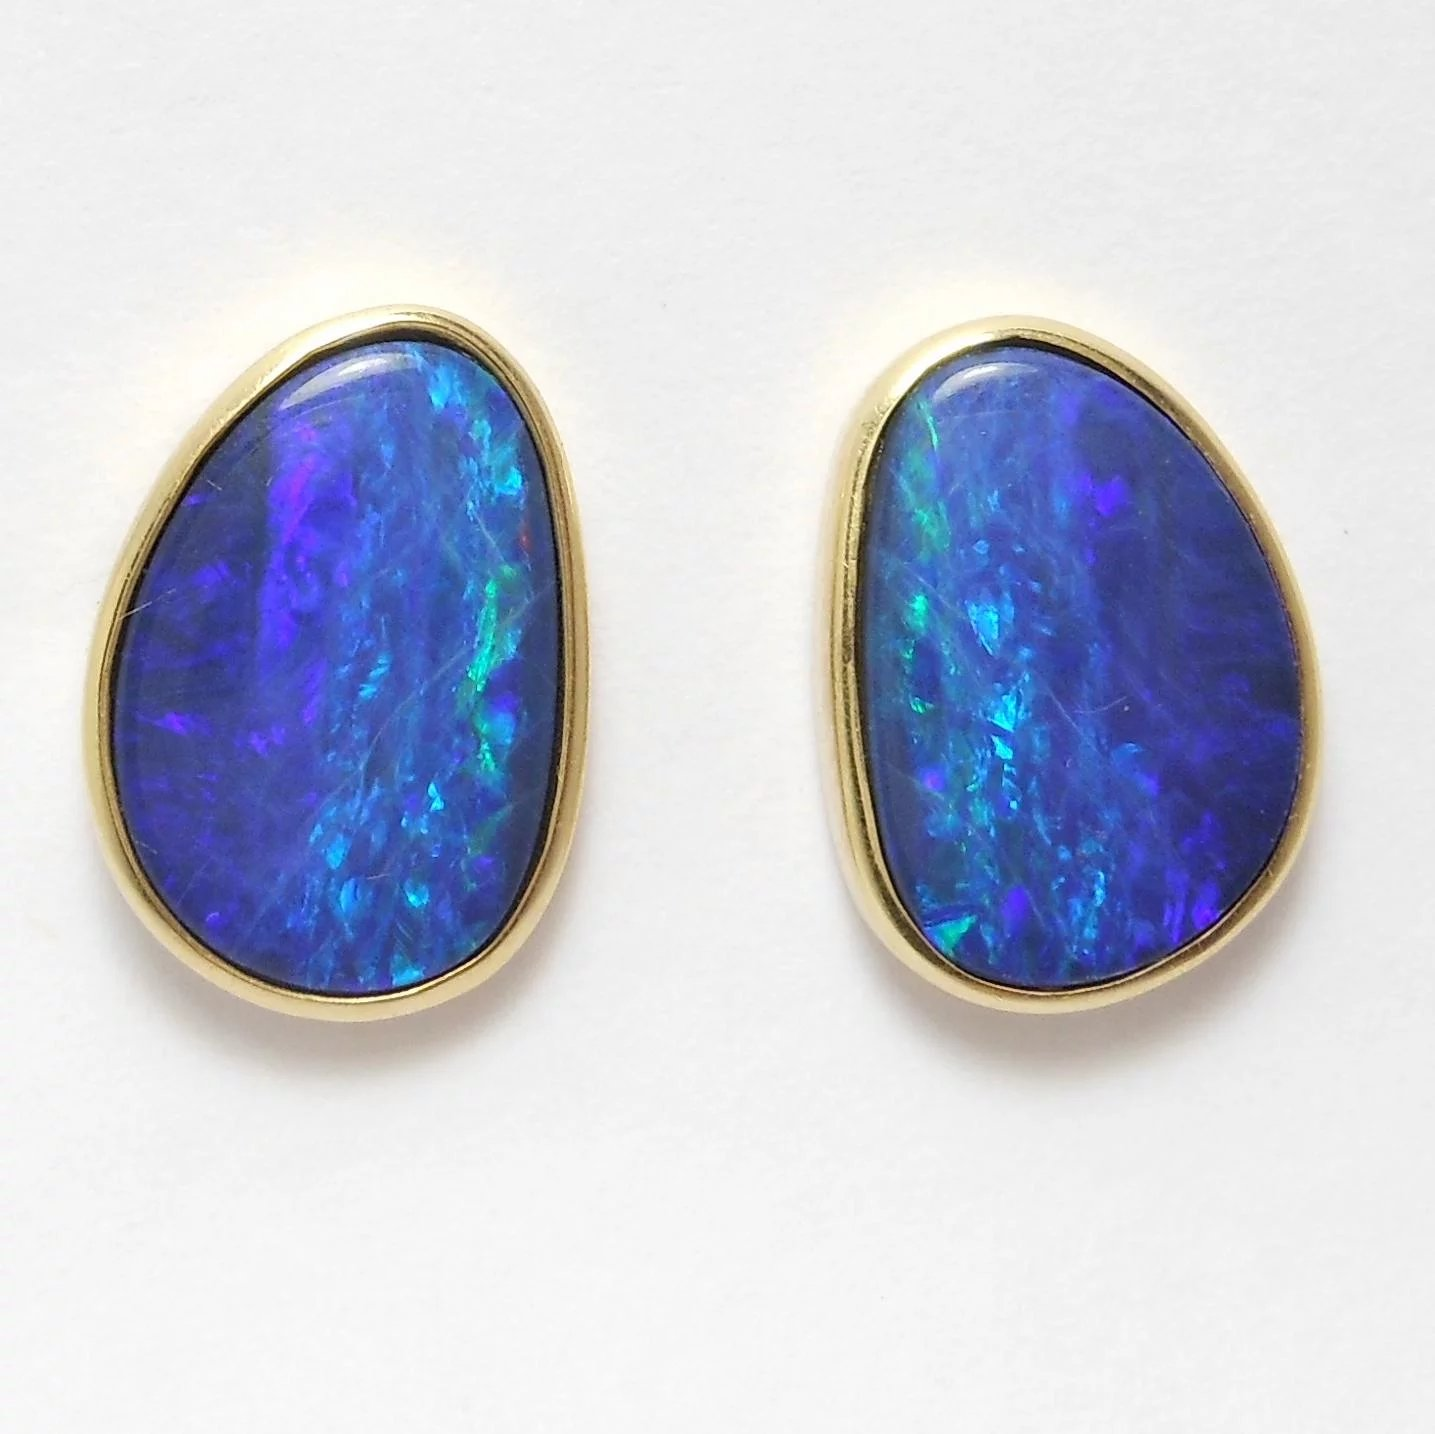 opal jewelry bl bling silver unisex jf sterling stud blue az mens earring earrings synthetic